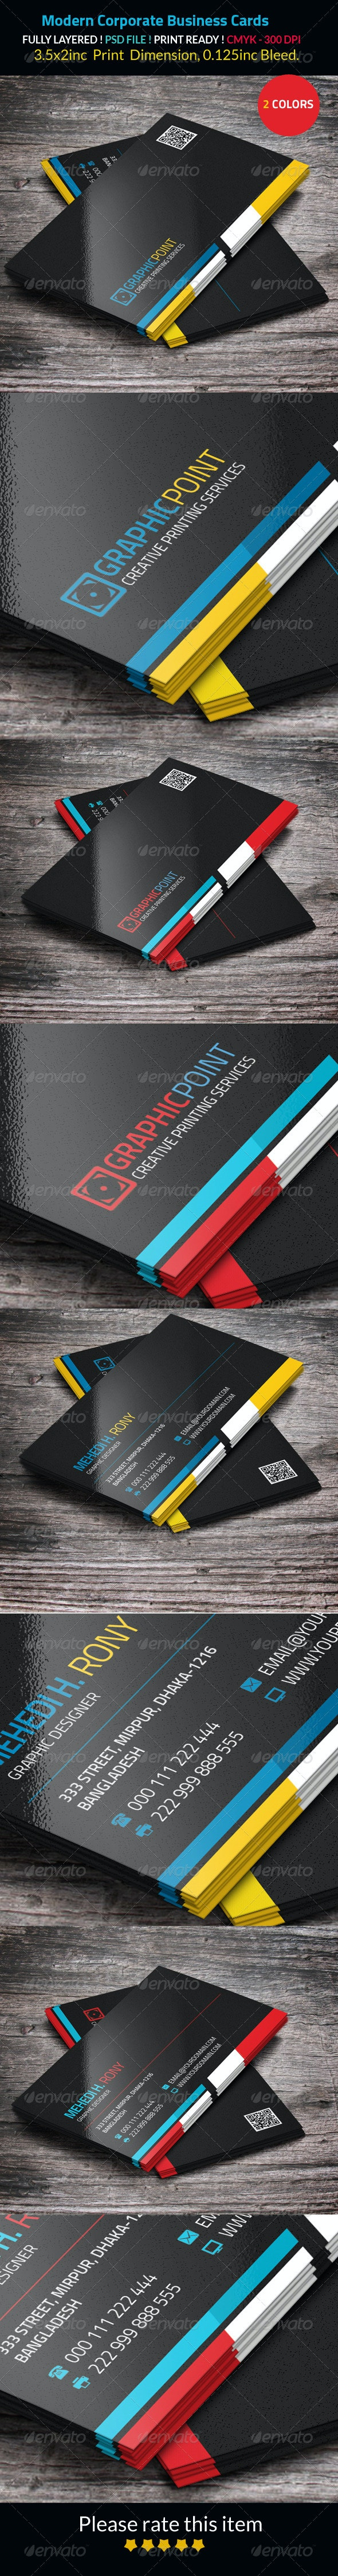 Modern Corporate Business Cards - Corporate Business Cards